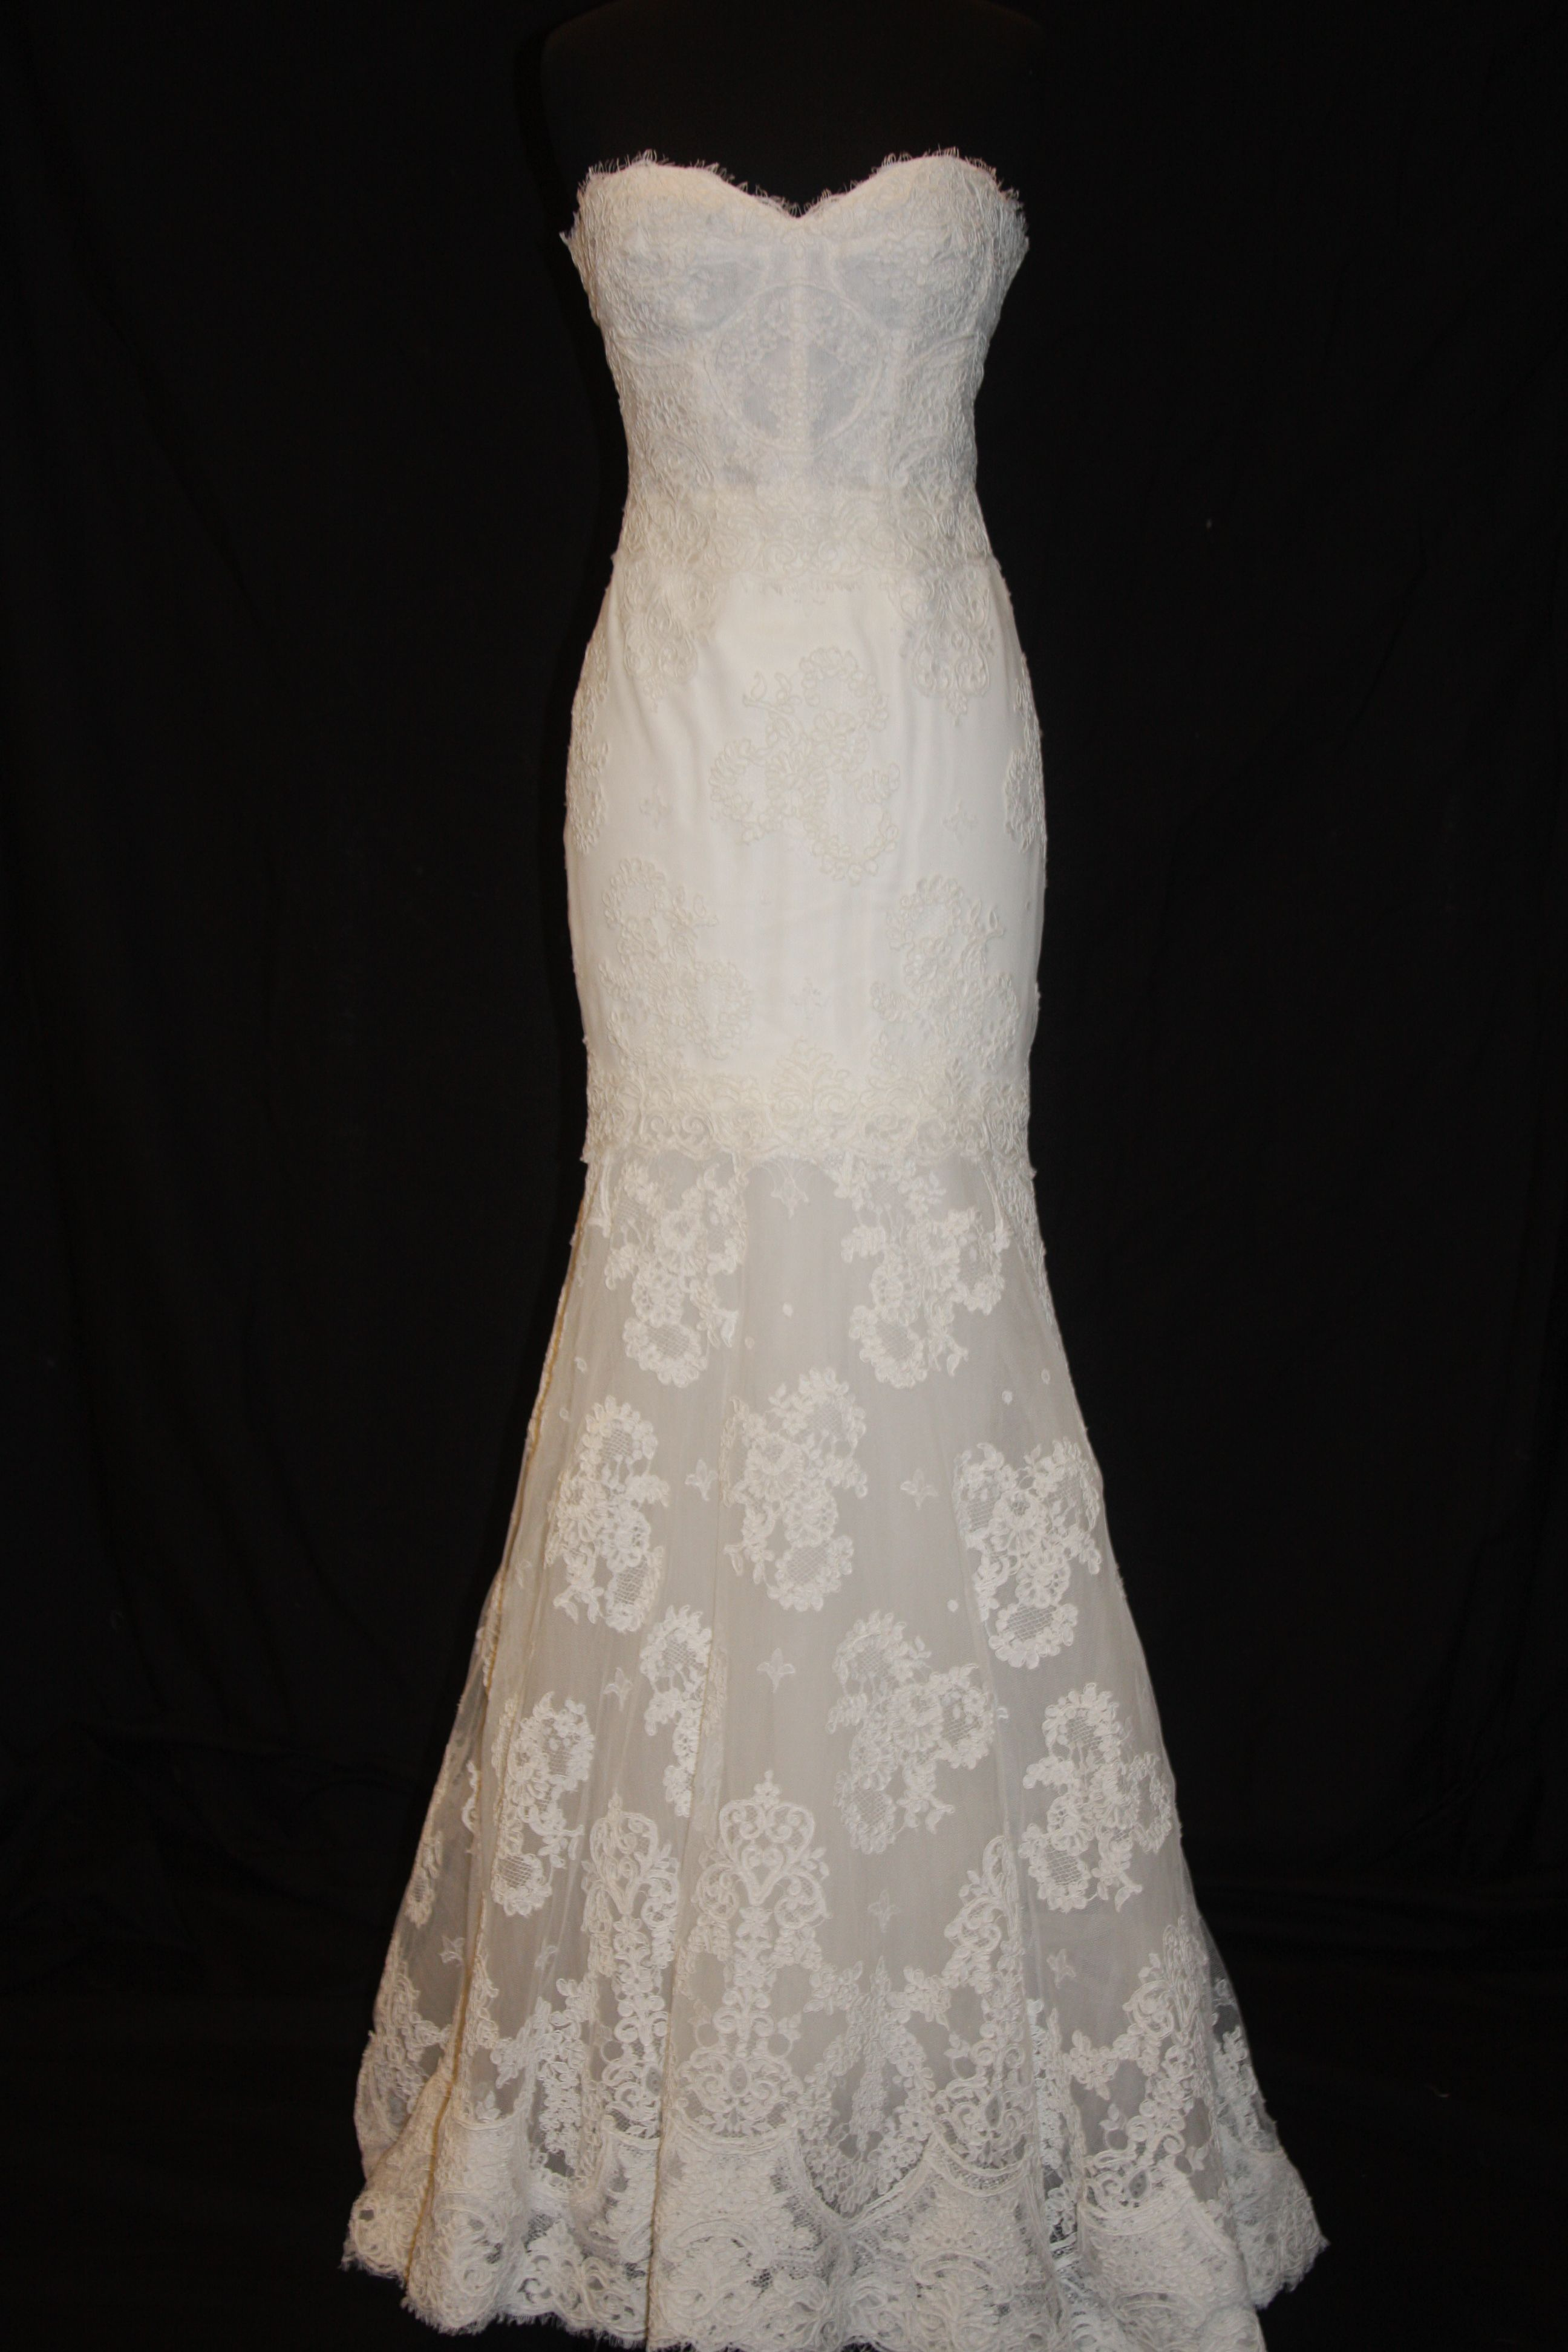 Atlanta Boutique Holiday Hours With Images Lace Weddings Wedding Dresses Lace Bridal Dresses